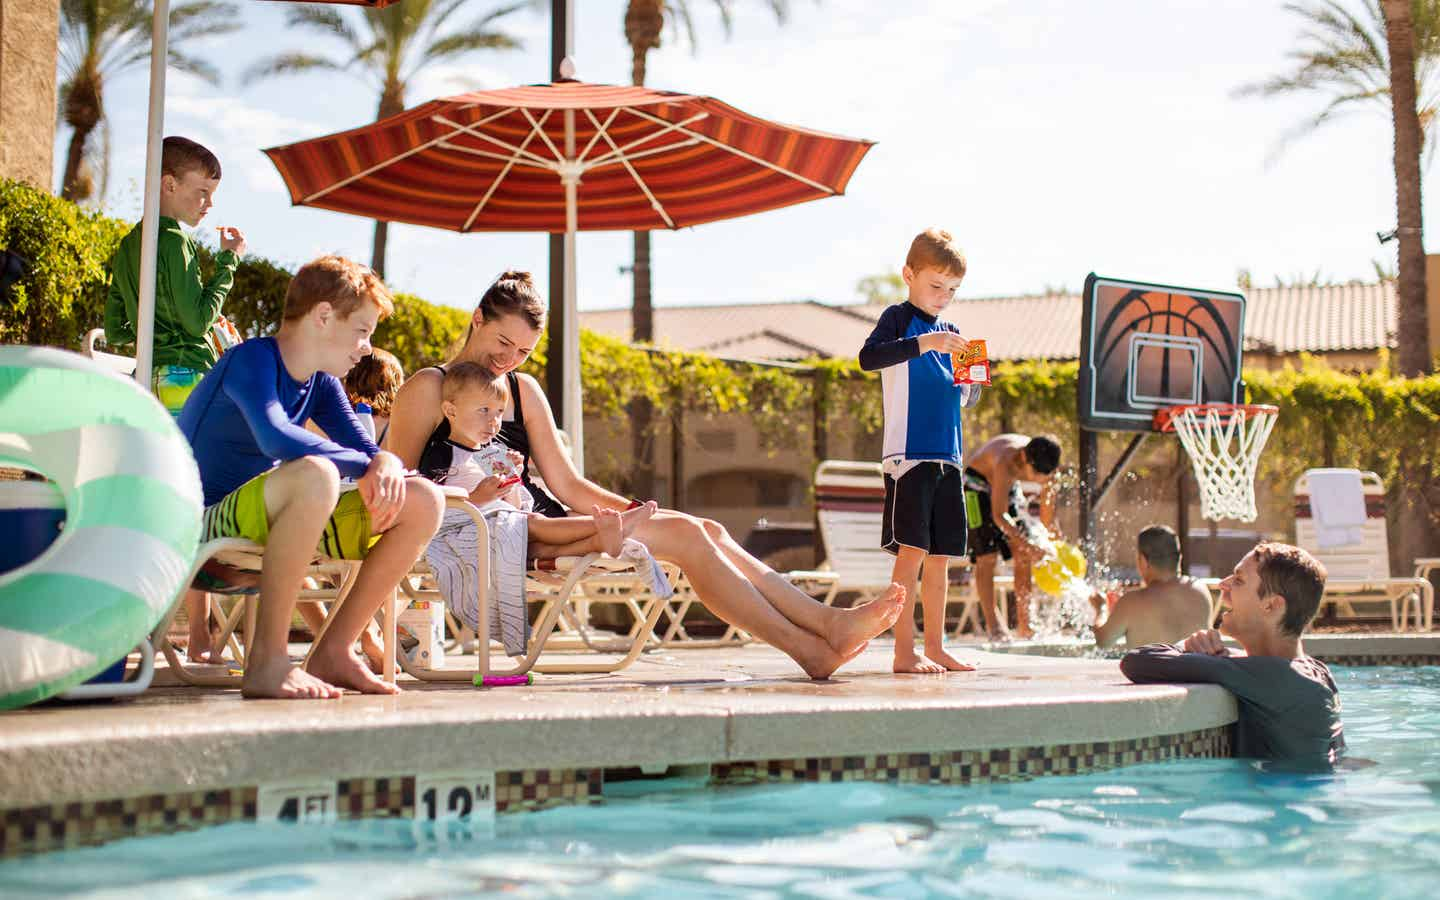 Family by the pool at Scottsdale Resort in Scottsdale, Arizona.